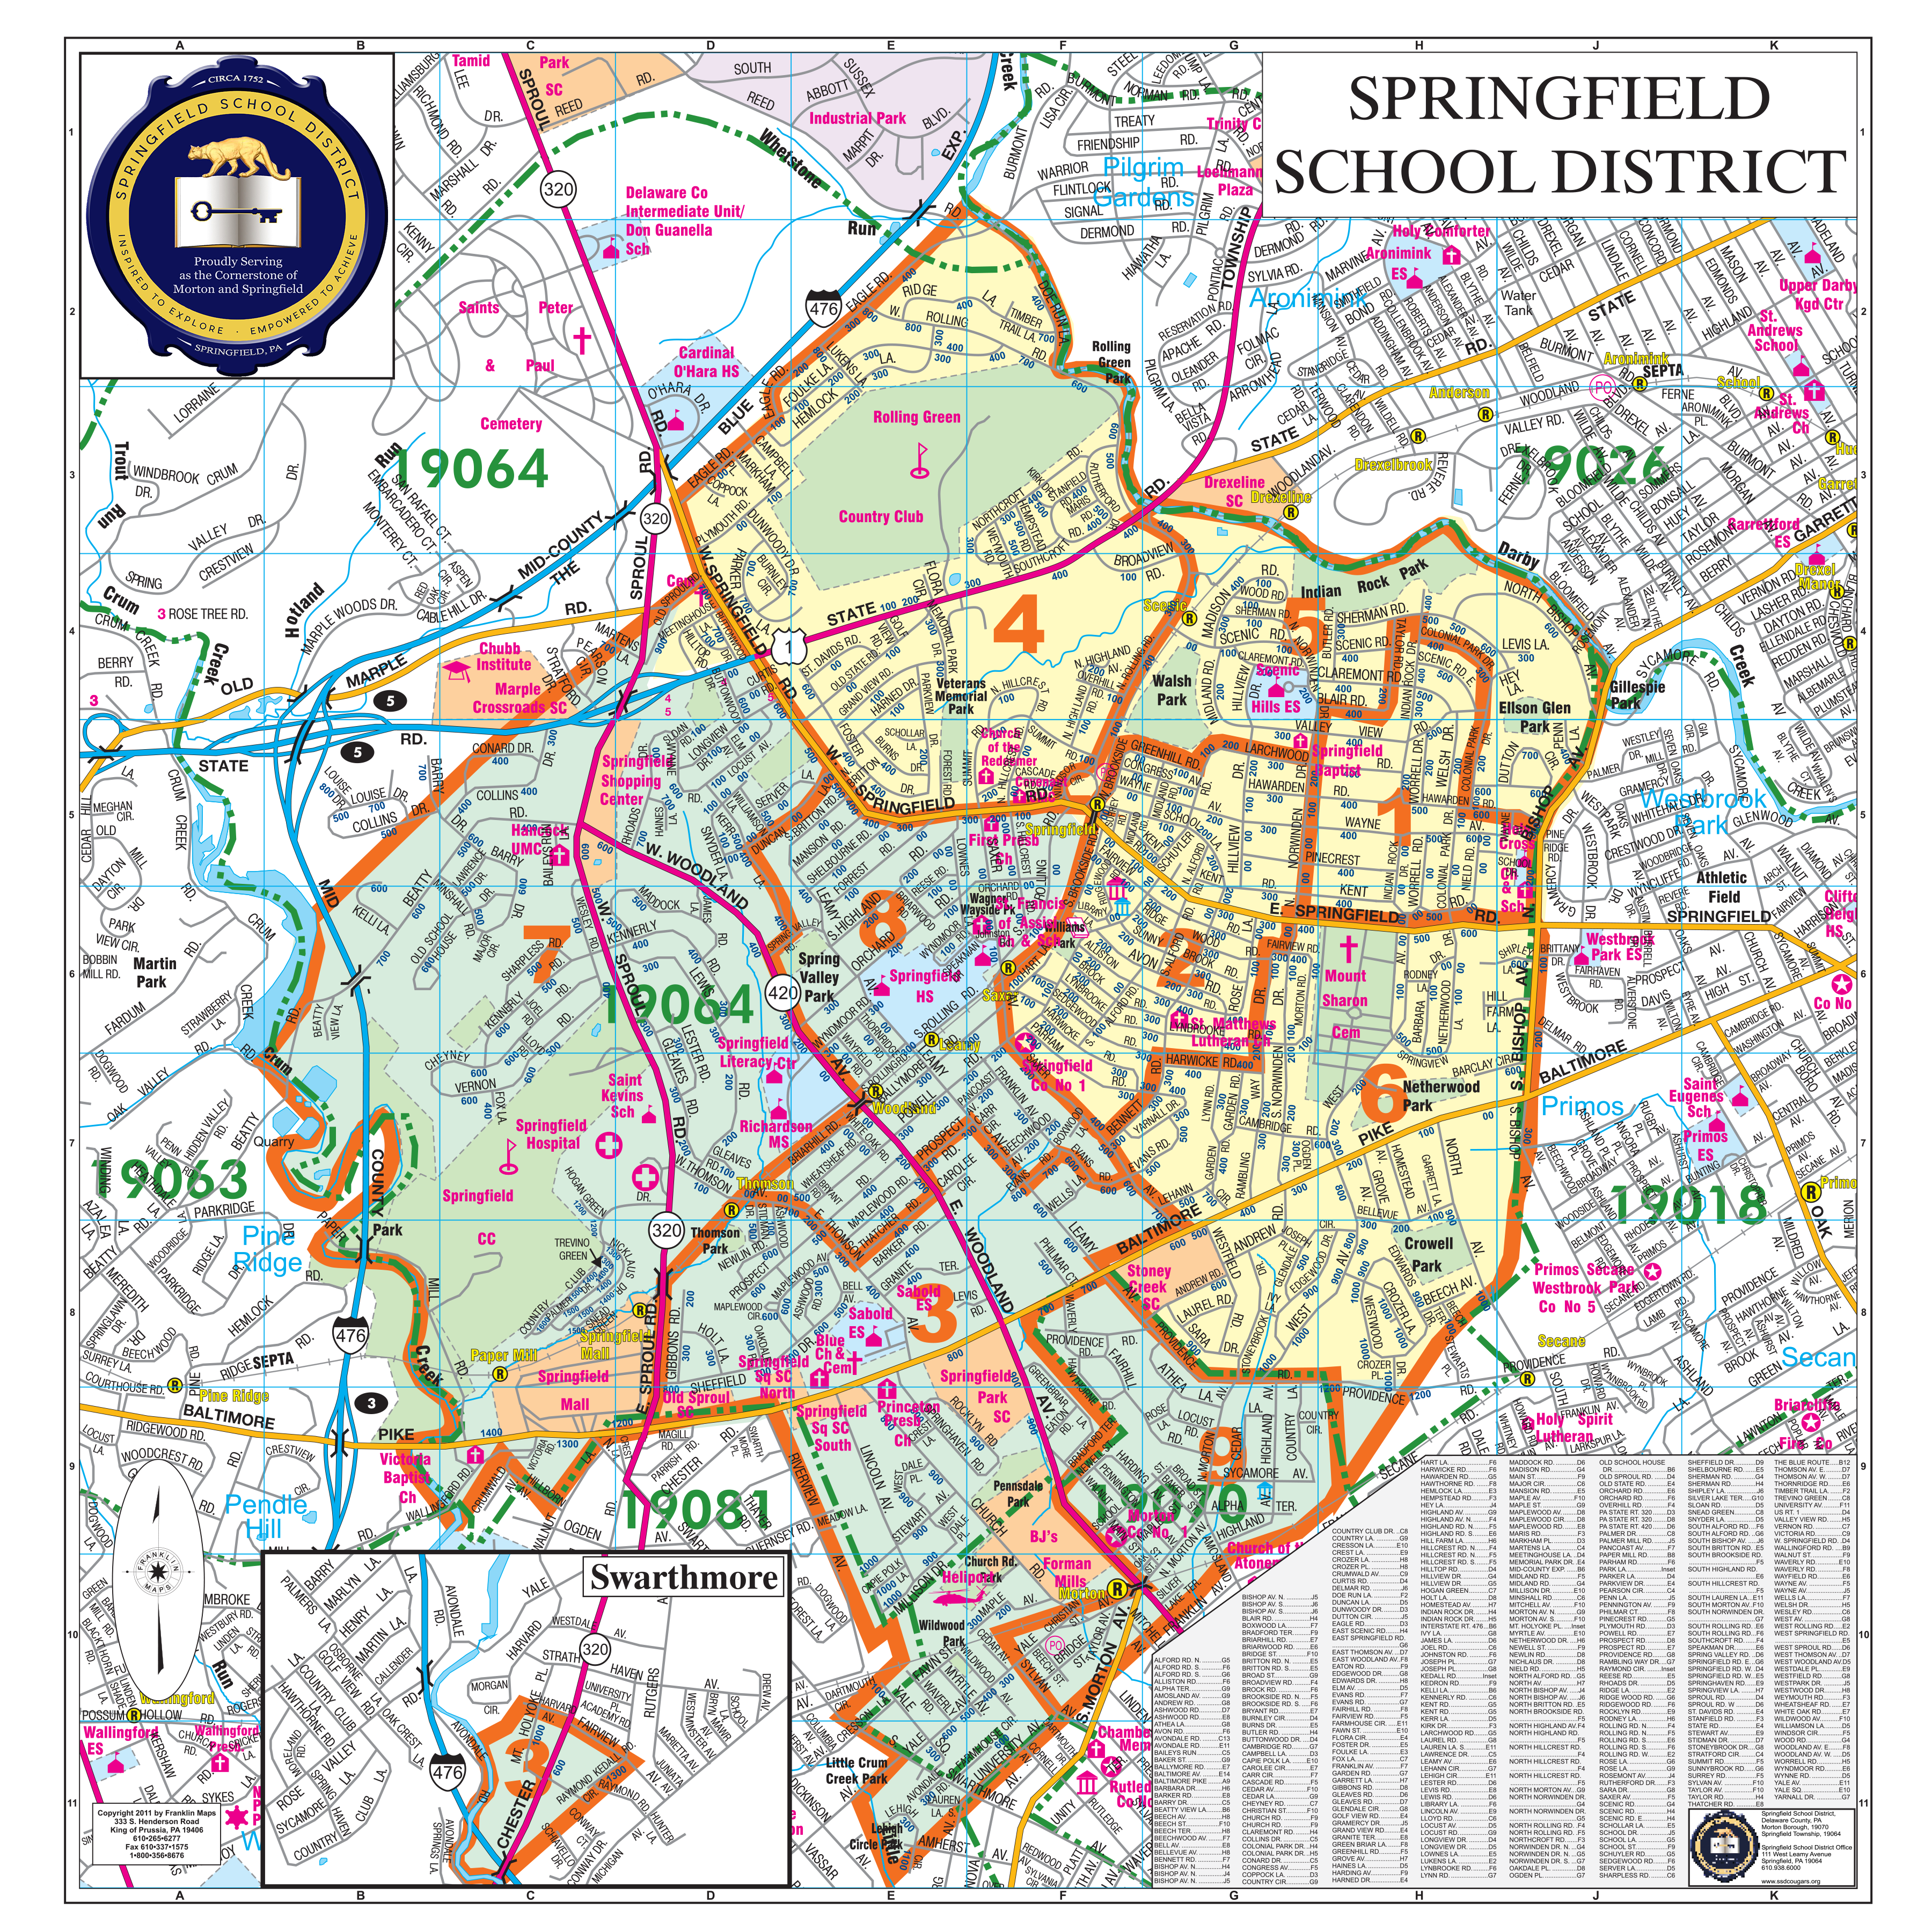 Springfield School District Boundaries Map